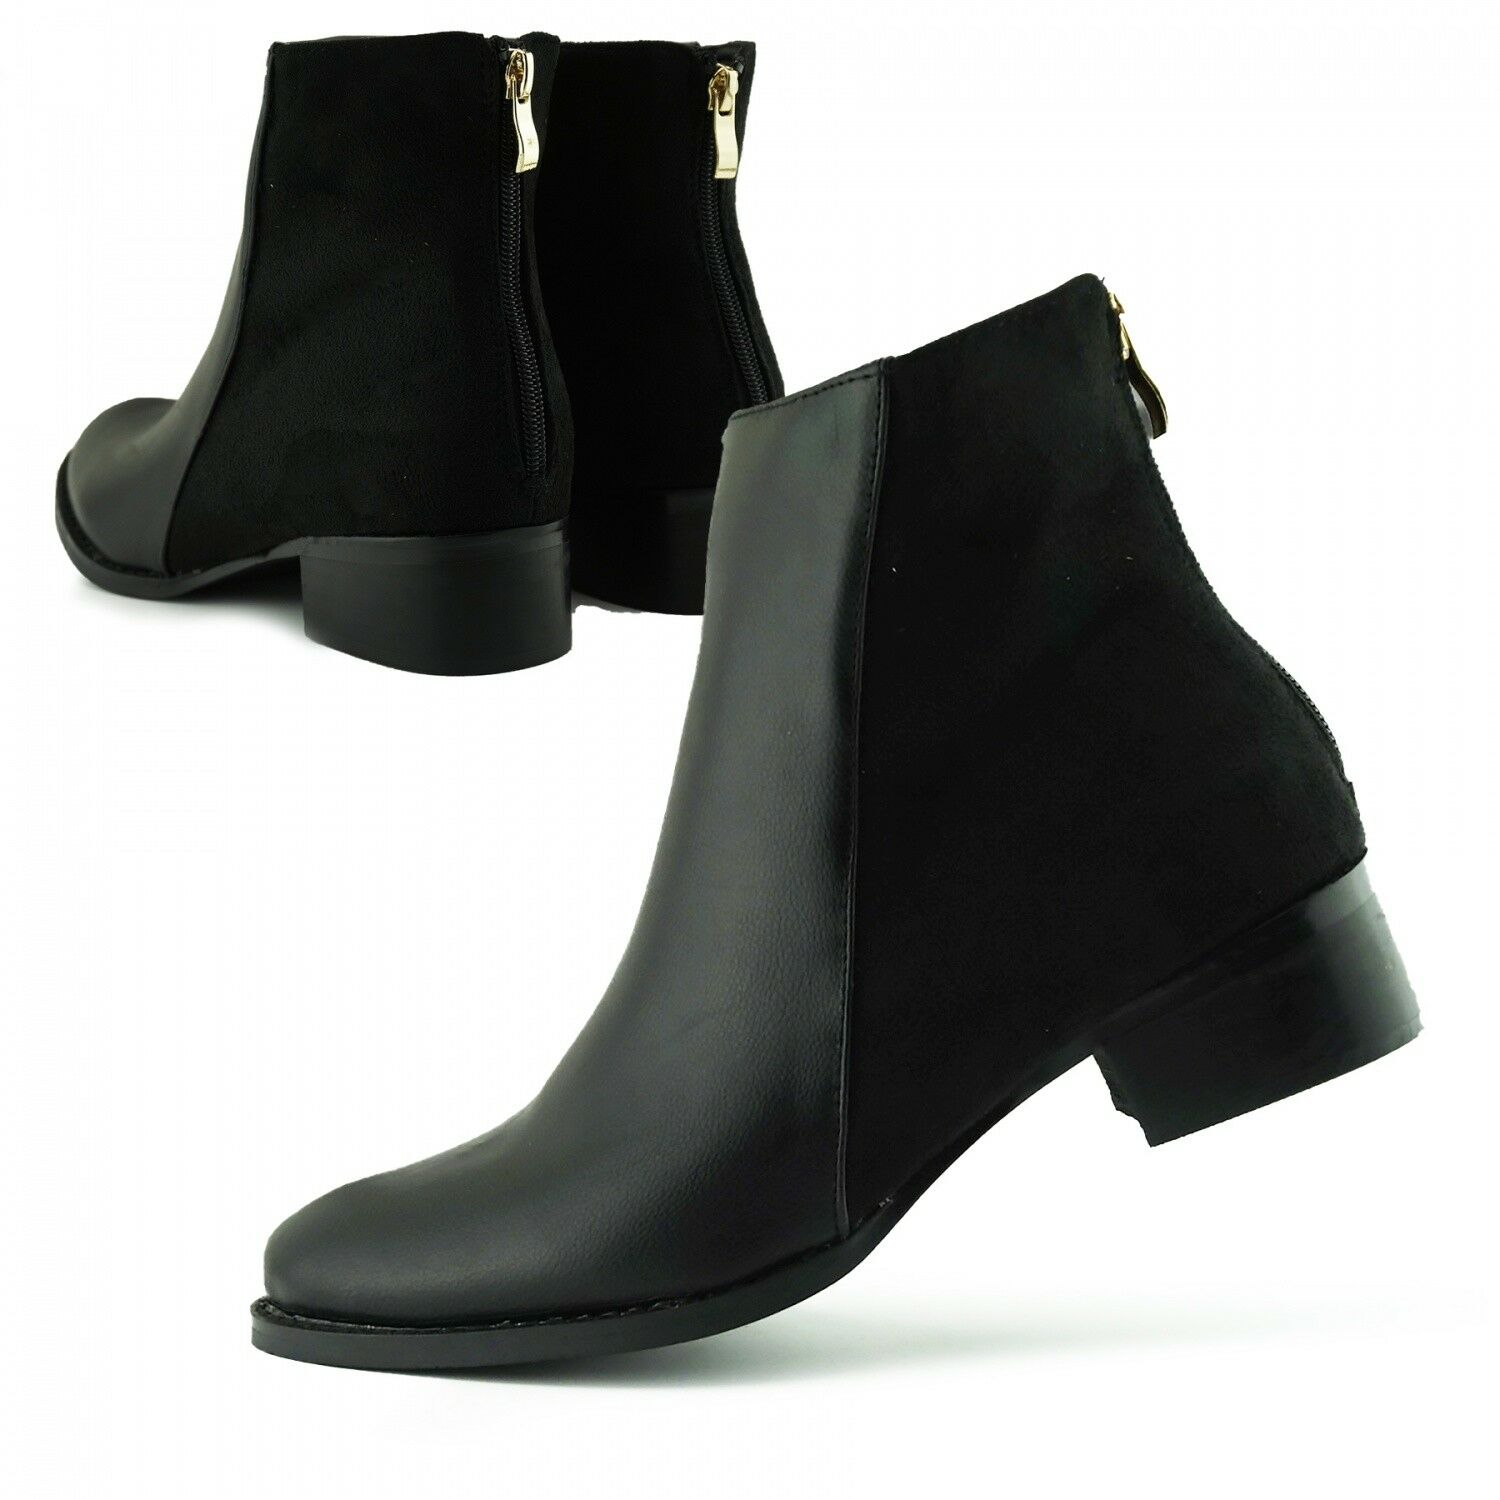 1a8ebd5e670c Details about Women s Low Block Flat Heel   Rounded Toe School Work Ankle  Boots